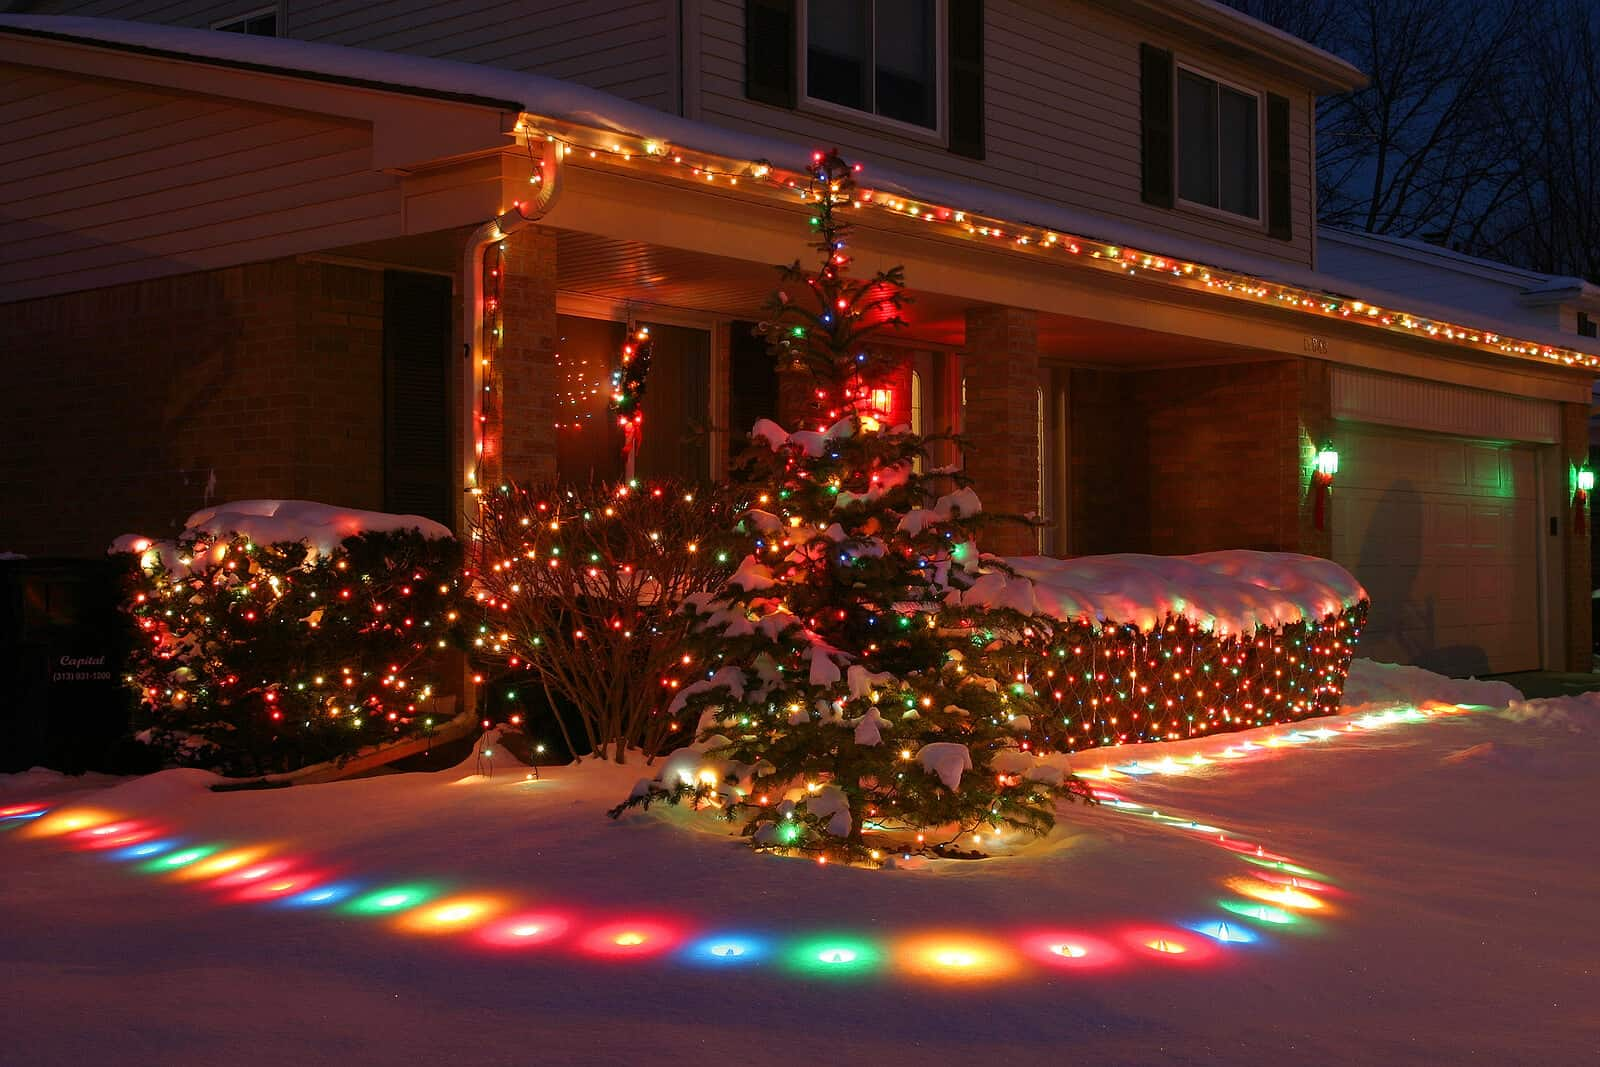 How to hang holiday lights with Gutter Guards